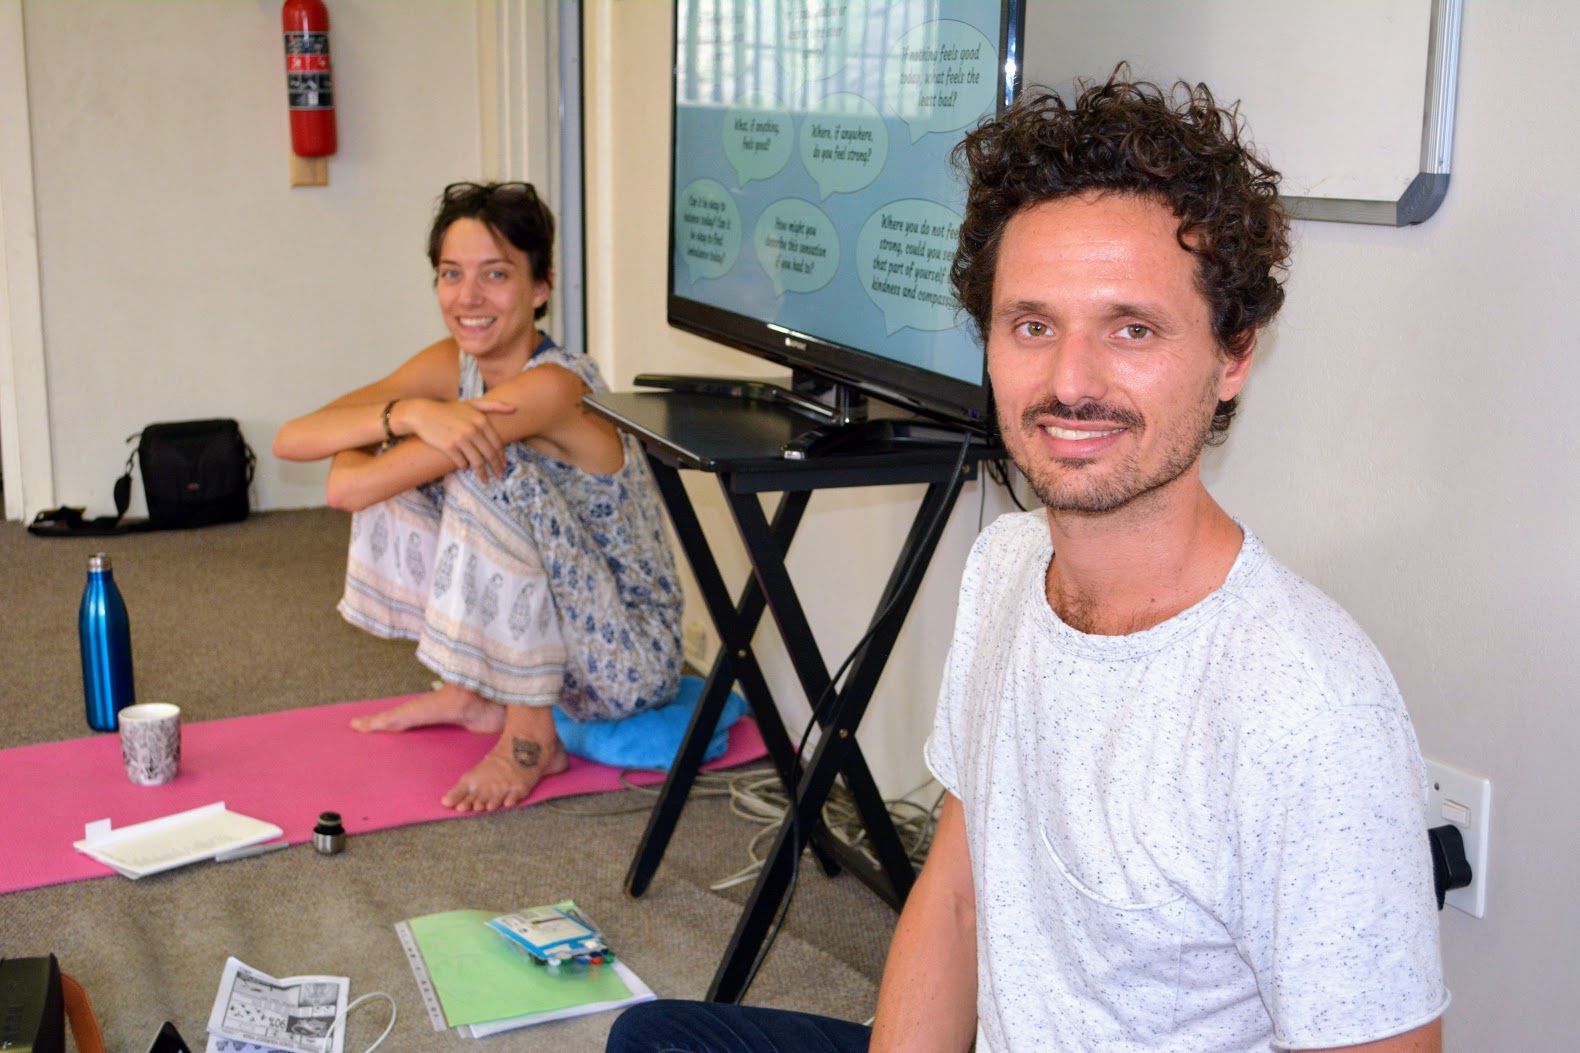 Ludovic and I facilitating a workshop on trauma-informed yoga for the 17 teachers of Yoga4Alex on March 8th in Johannesburg.